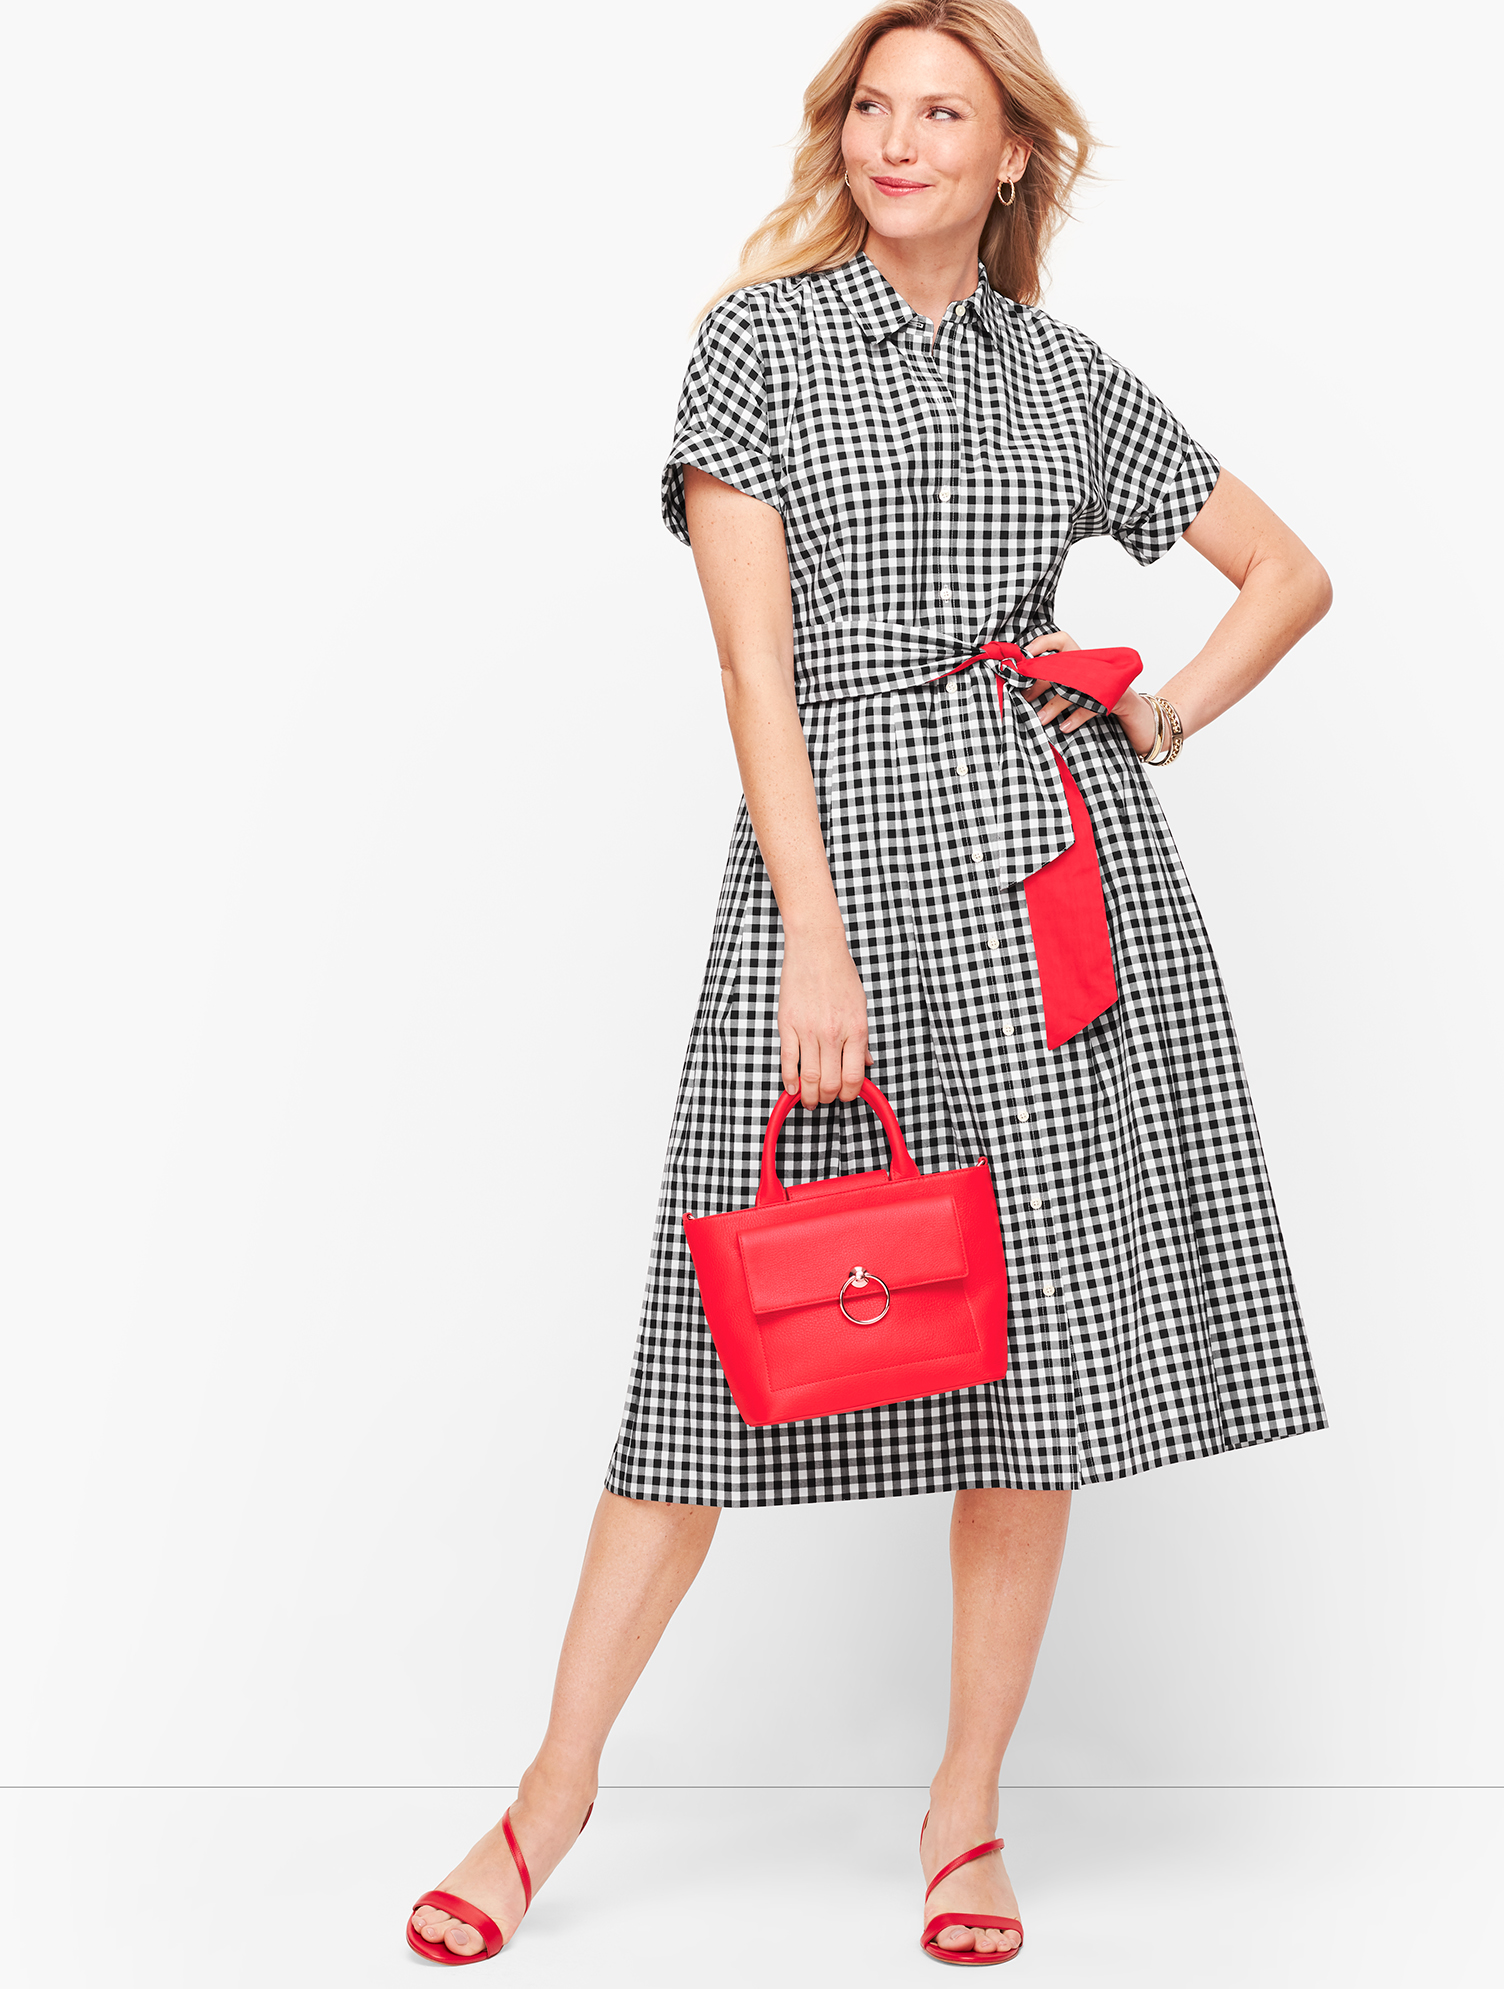 Fifties Dresses : 1950s Style Swing to Wiggle Dresses Gingham Shirt Dress - Black - 16 - 100 Cotton Talbots $139.00 AT vintagedancer.com